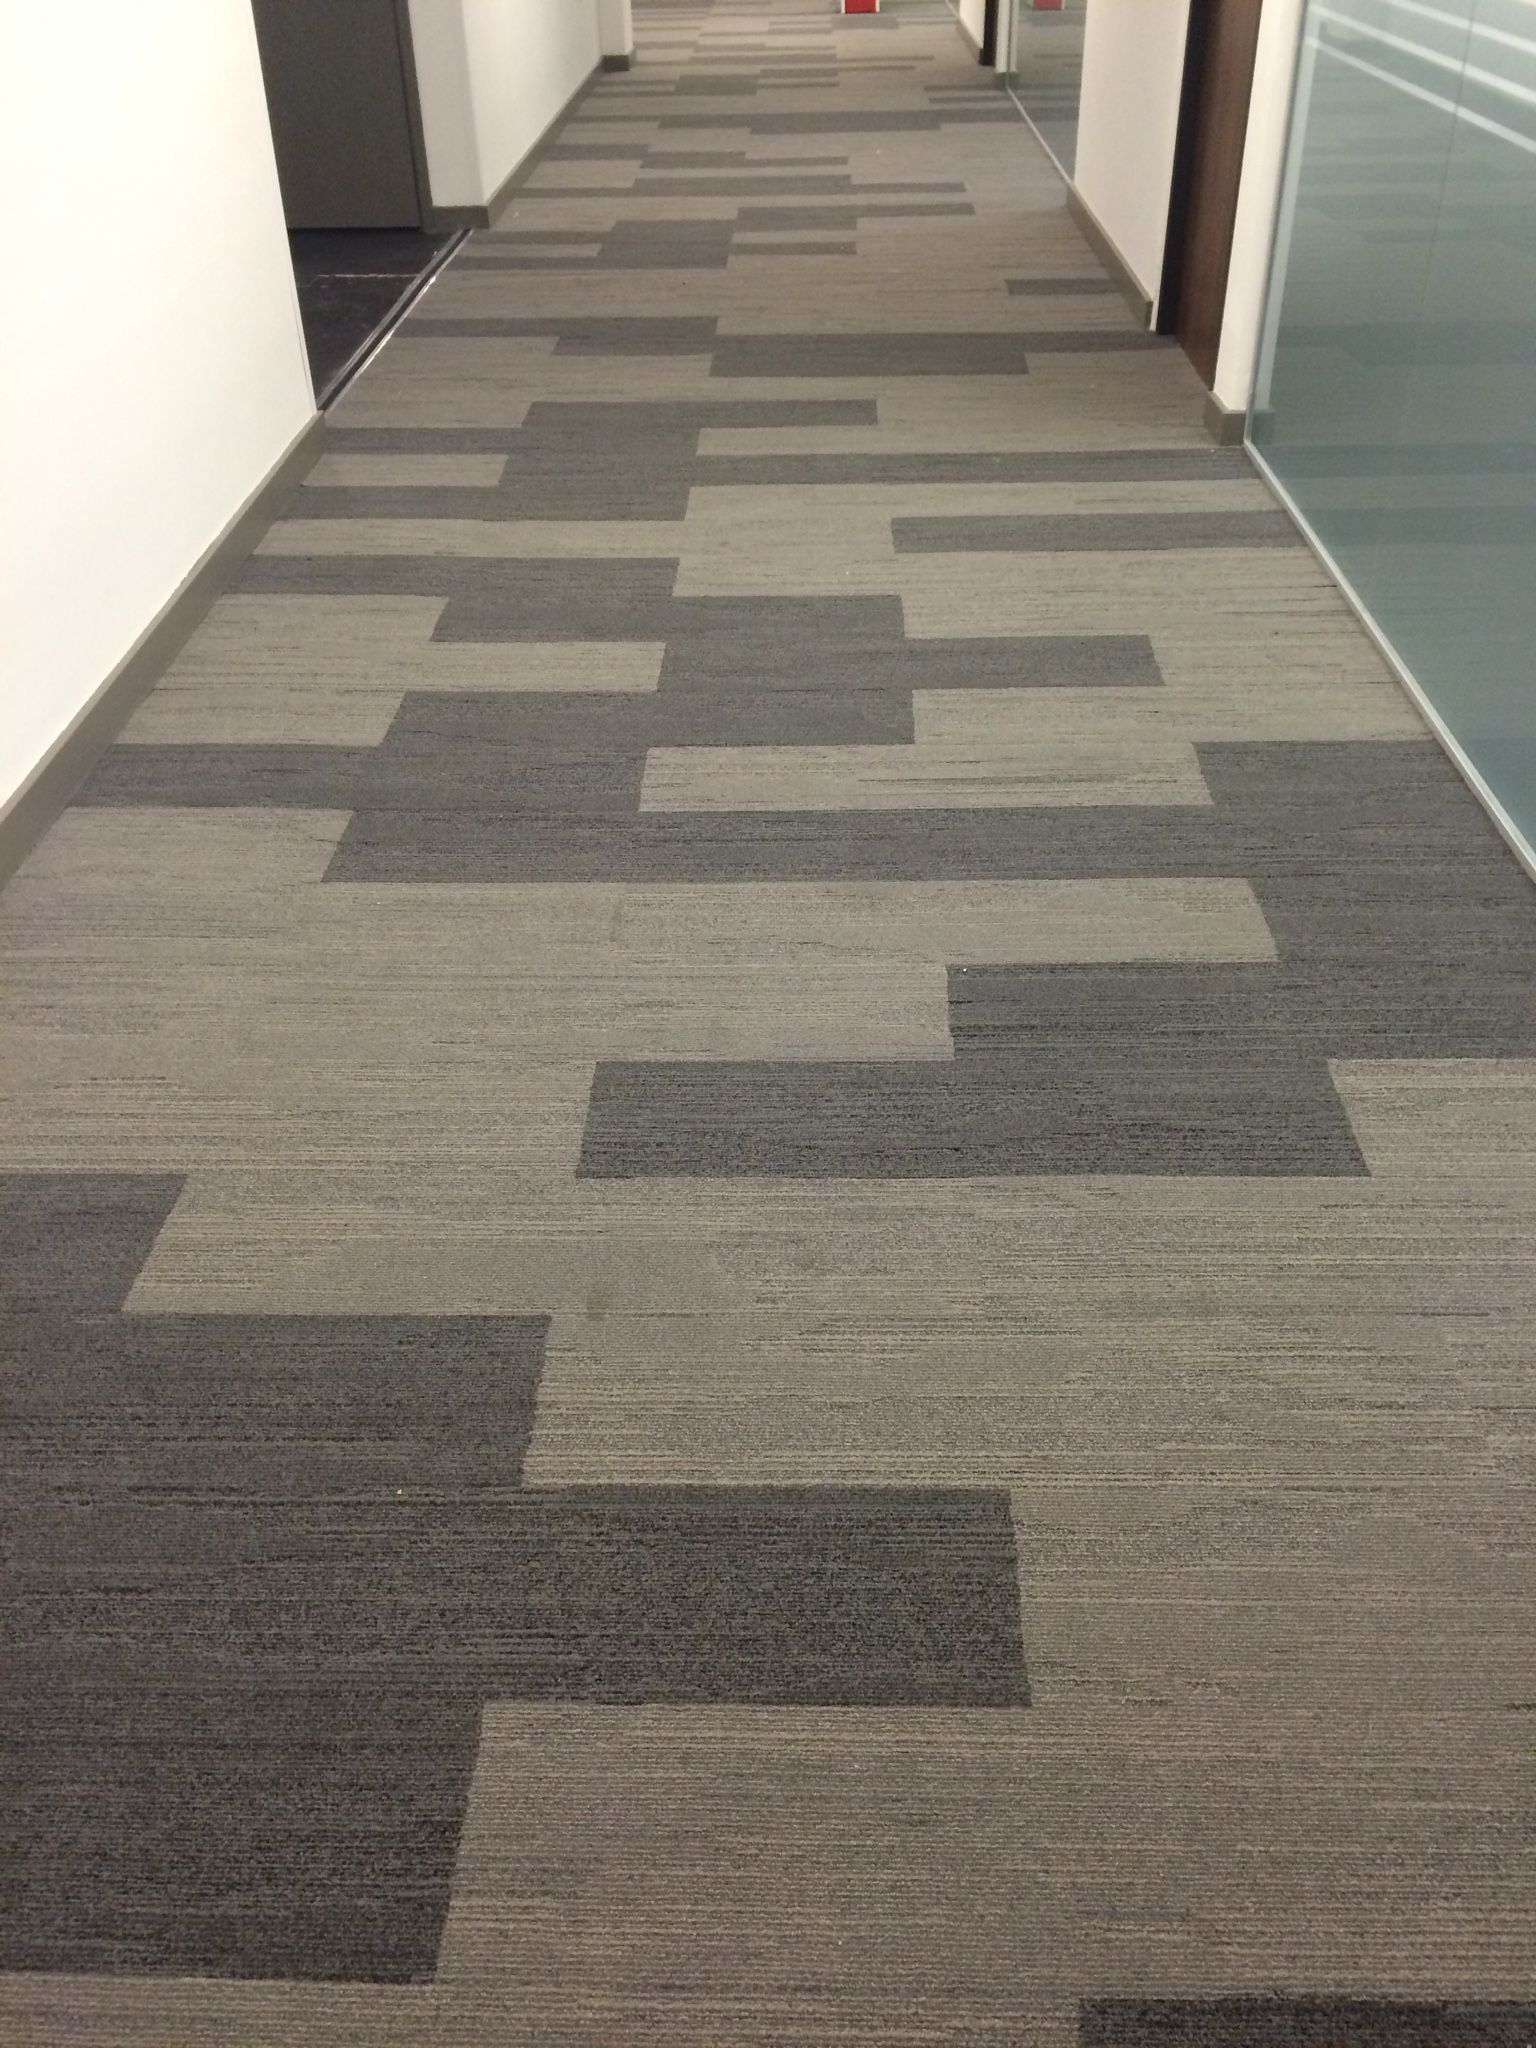 Popular Office Colors With Black Motif Carpets In 2020 Carpet Tiles Carpet Tiles Design Carpet Tiles Office